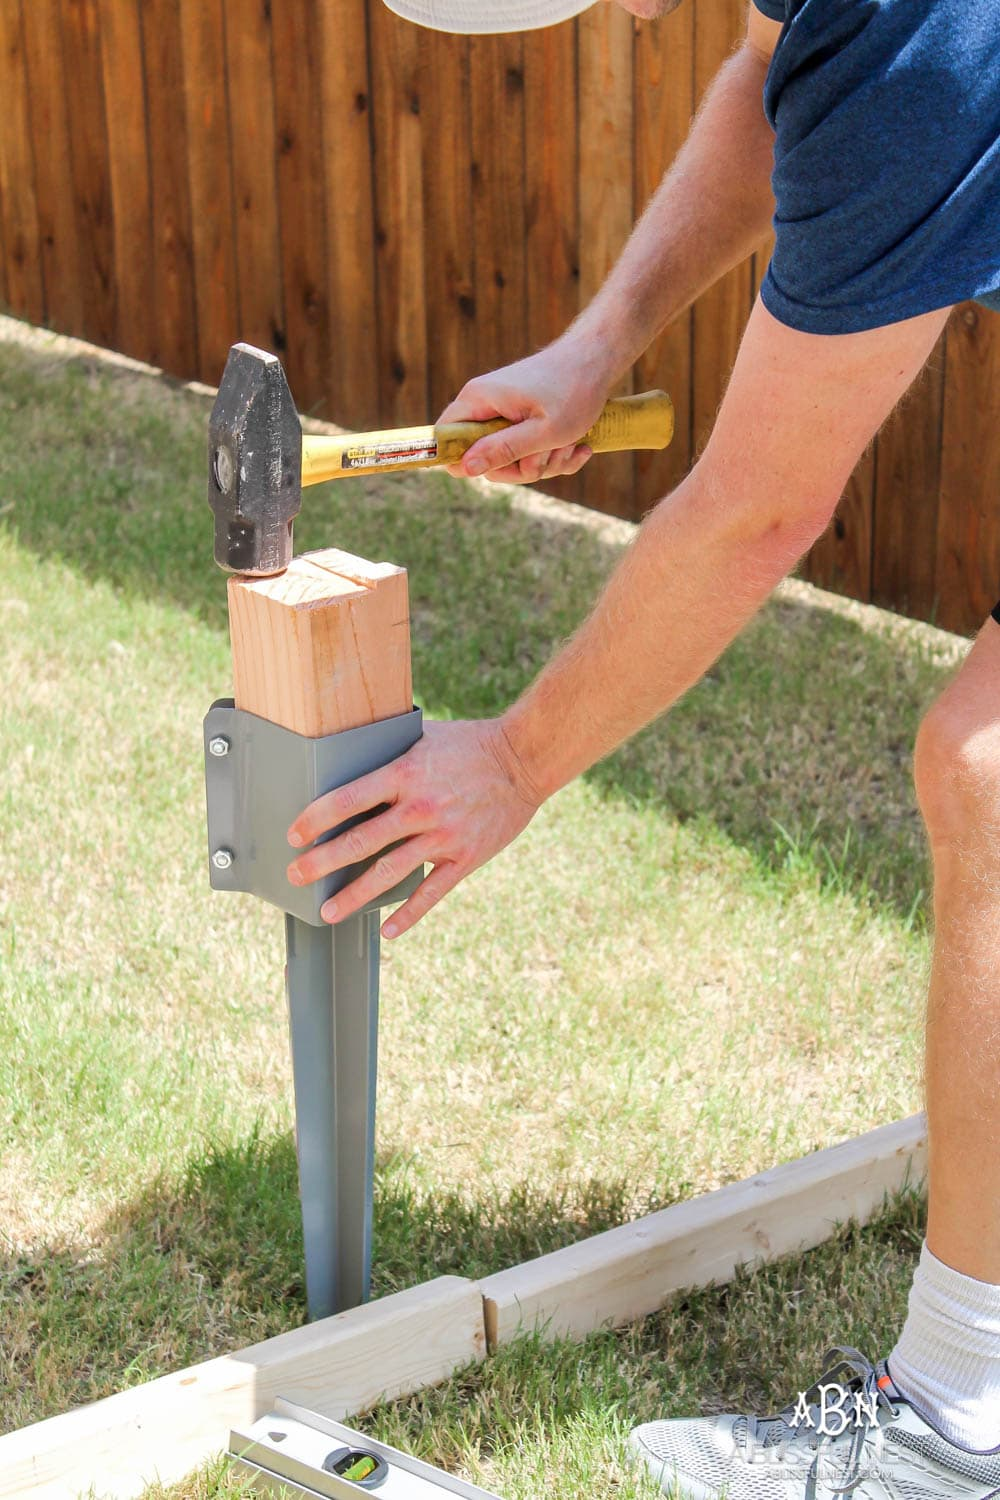 Follow our simple steps to recreate this dog gate for your own backyard with this essential gate kit from National Hardware. #ad #NationalHardware